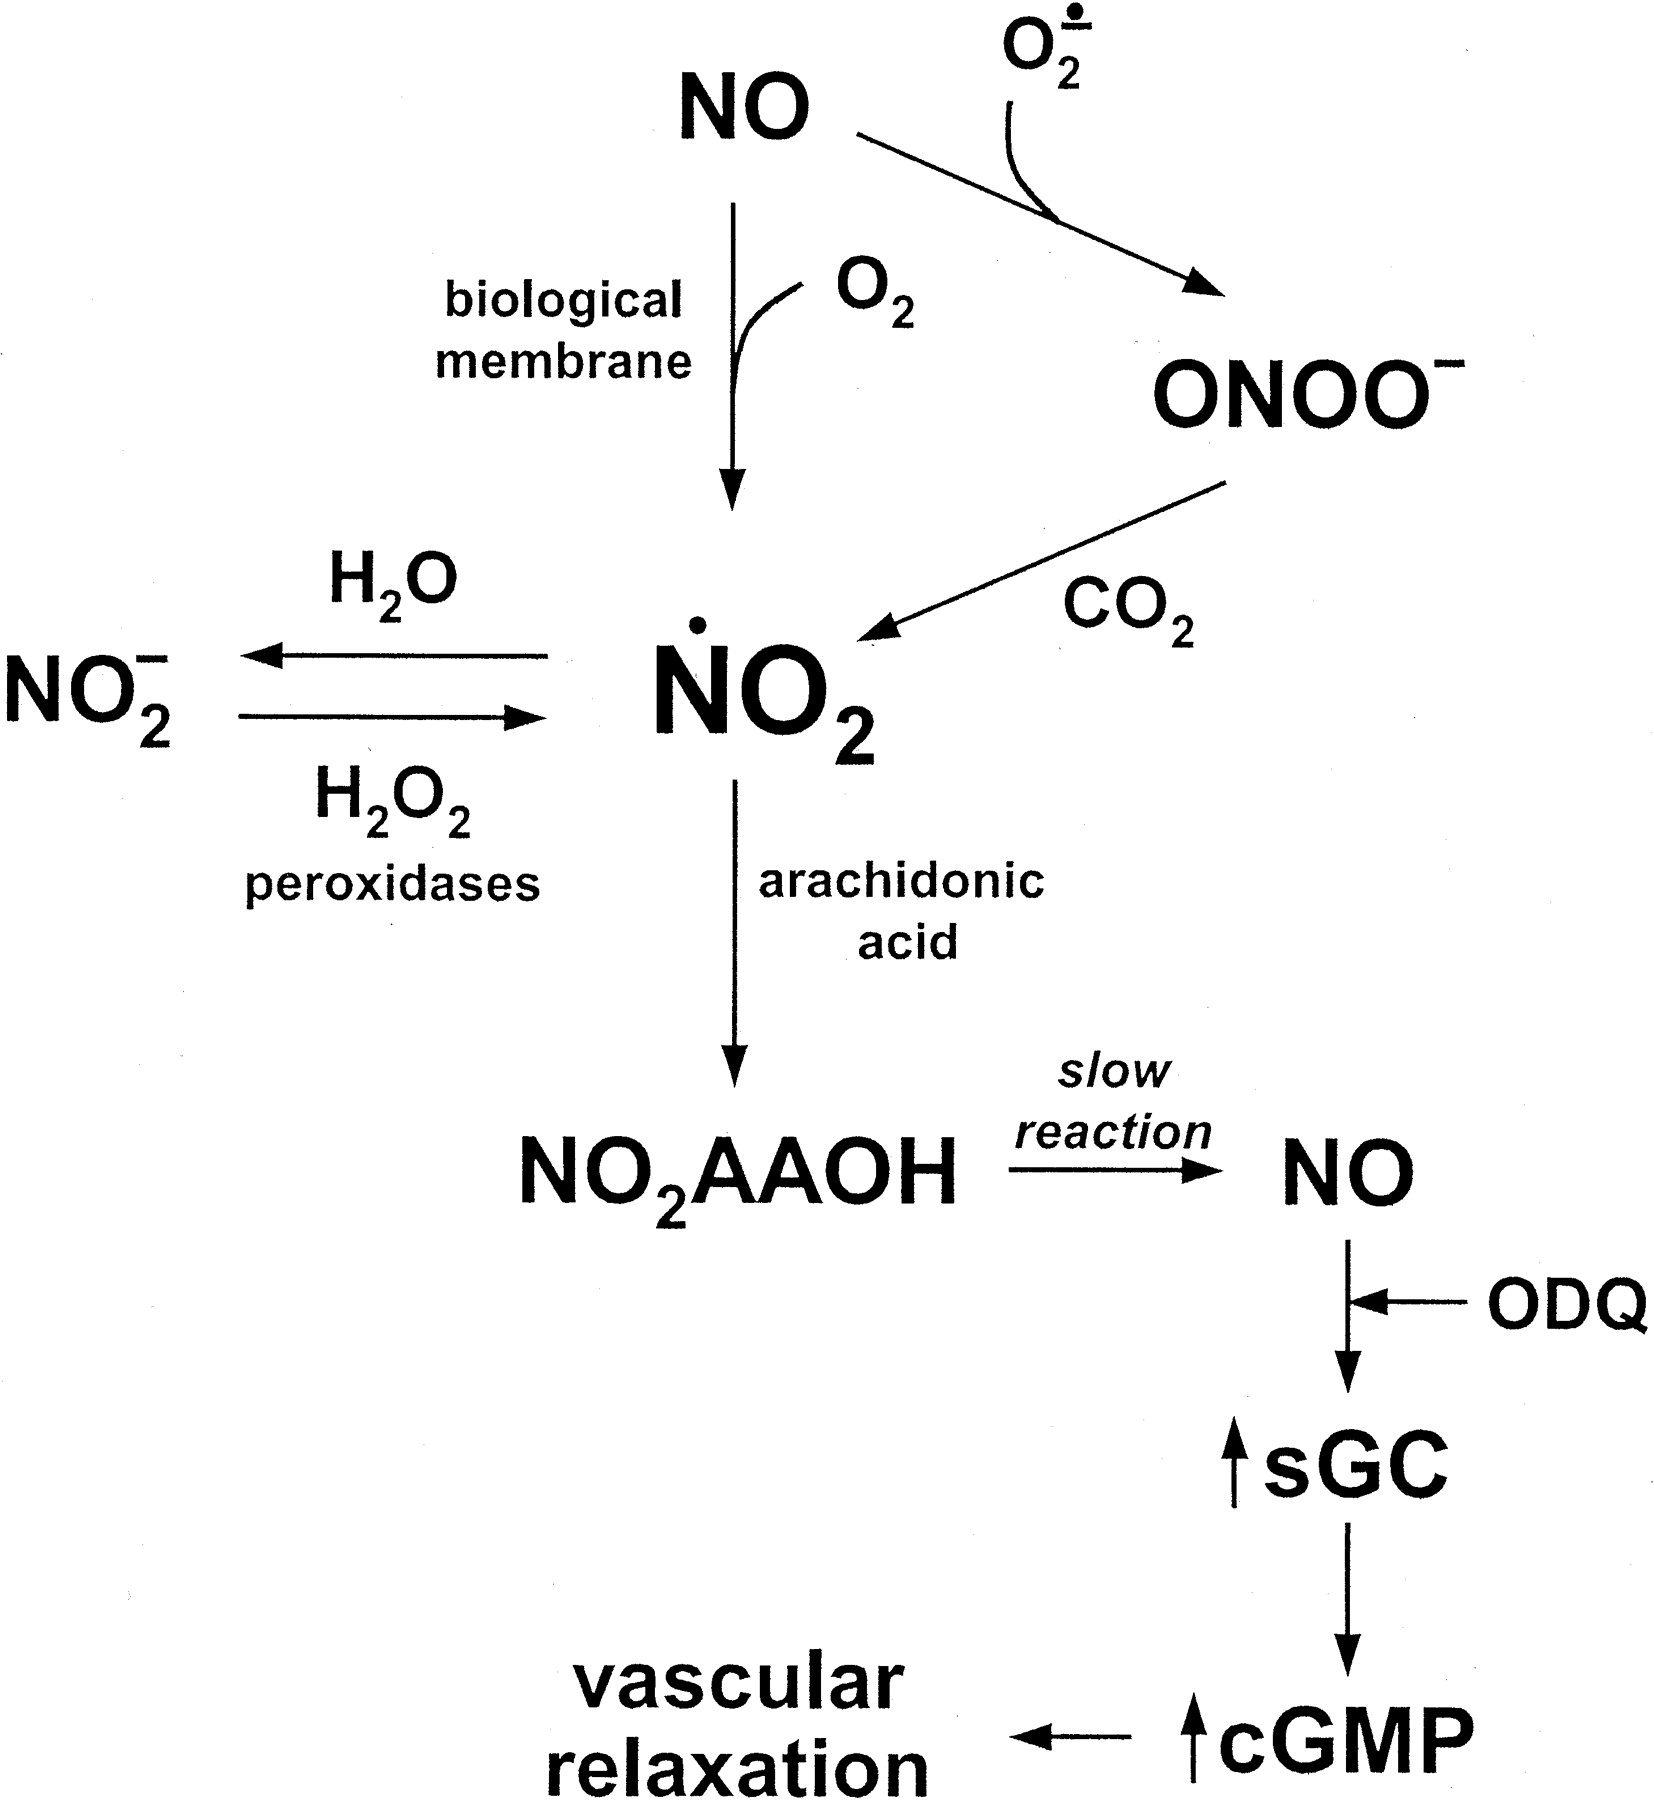 Vicinal Nitrohydroxyeicosatrienoic Acids: Vasodilator Lipids Formed